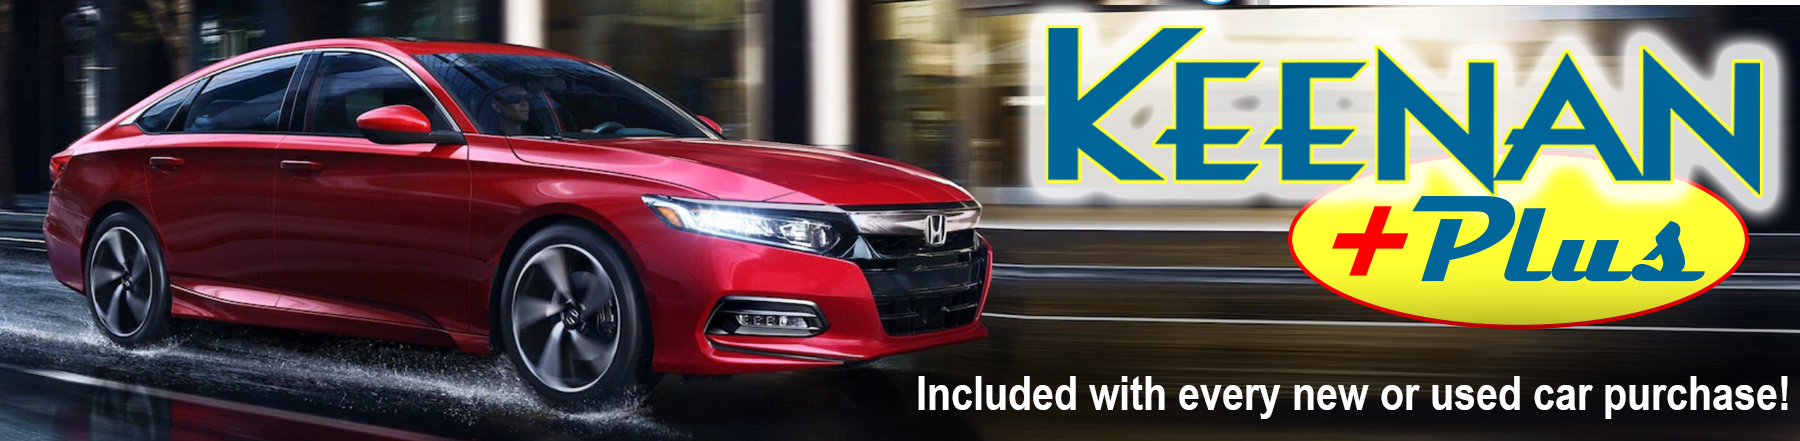 Keenan Plus Benefits at Keenan Honda. 3 Free Oil Changes, Loaners, Accessories discounts and more!